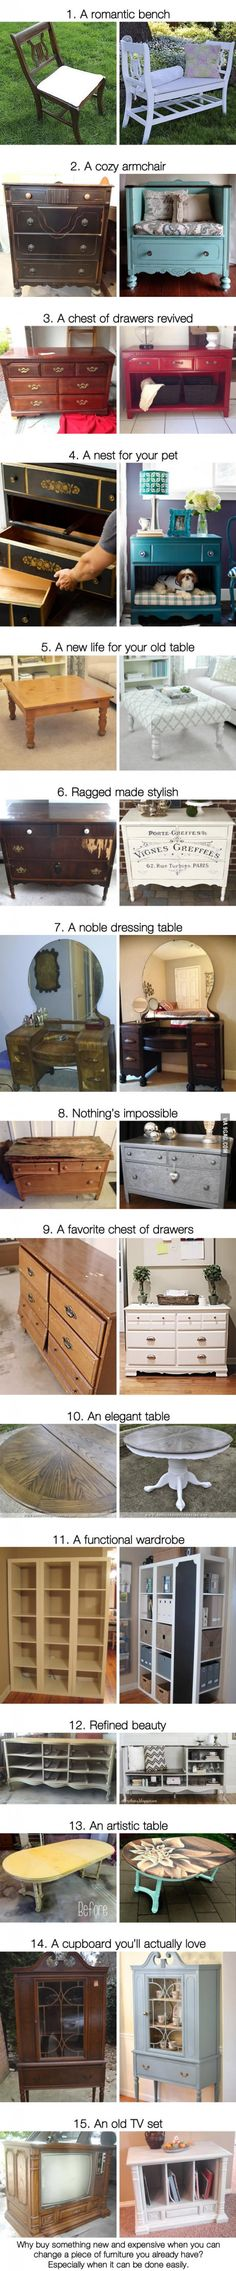 15 brilliant ideas for giving new life to old furniture